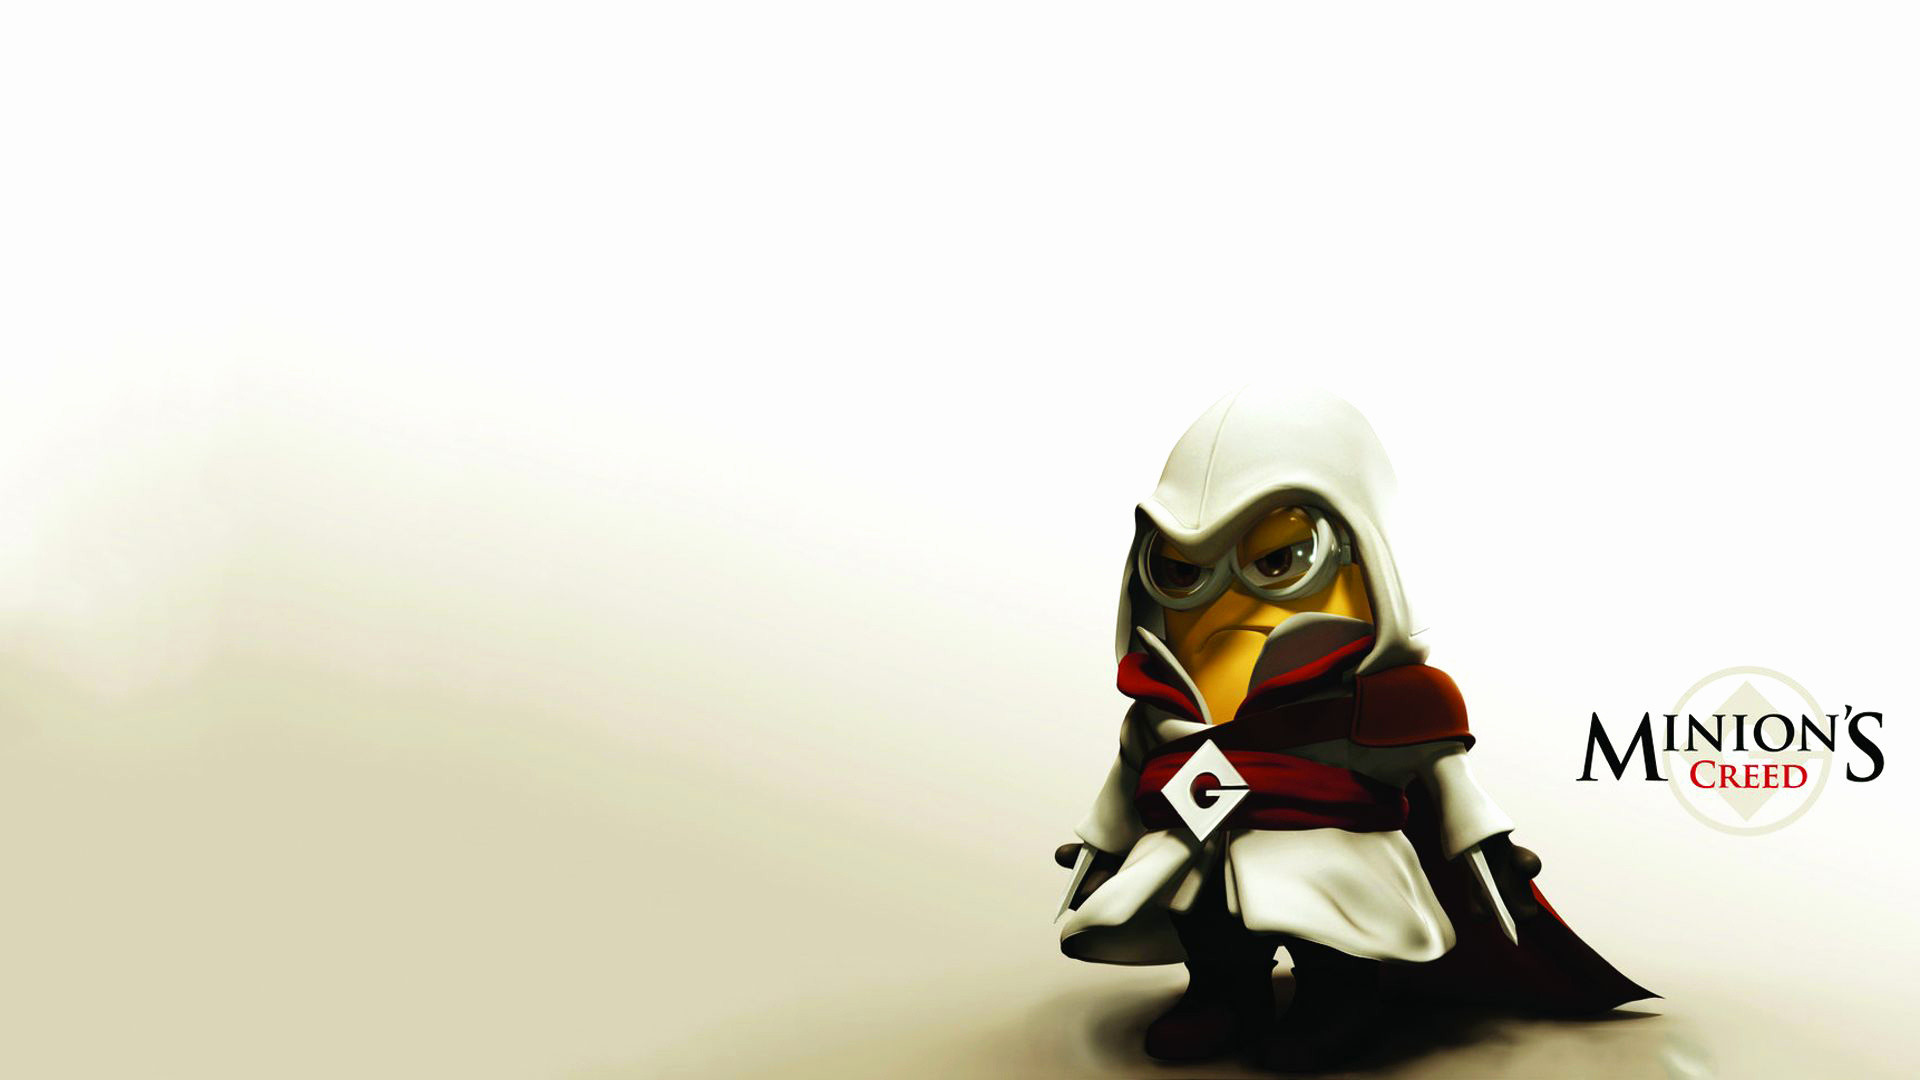 Res: 1920x1080, Minion Wallpaper Unique Minions Superheroes Wallpaper Impremedia